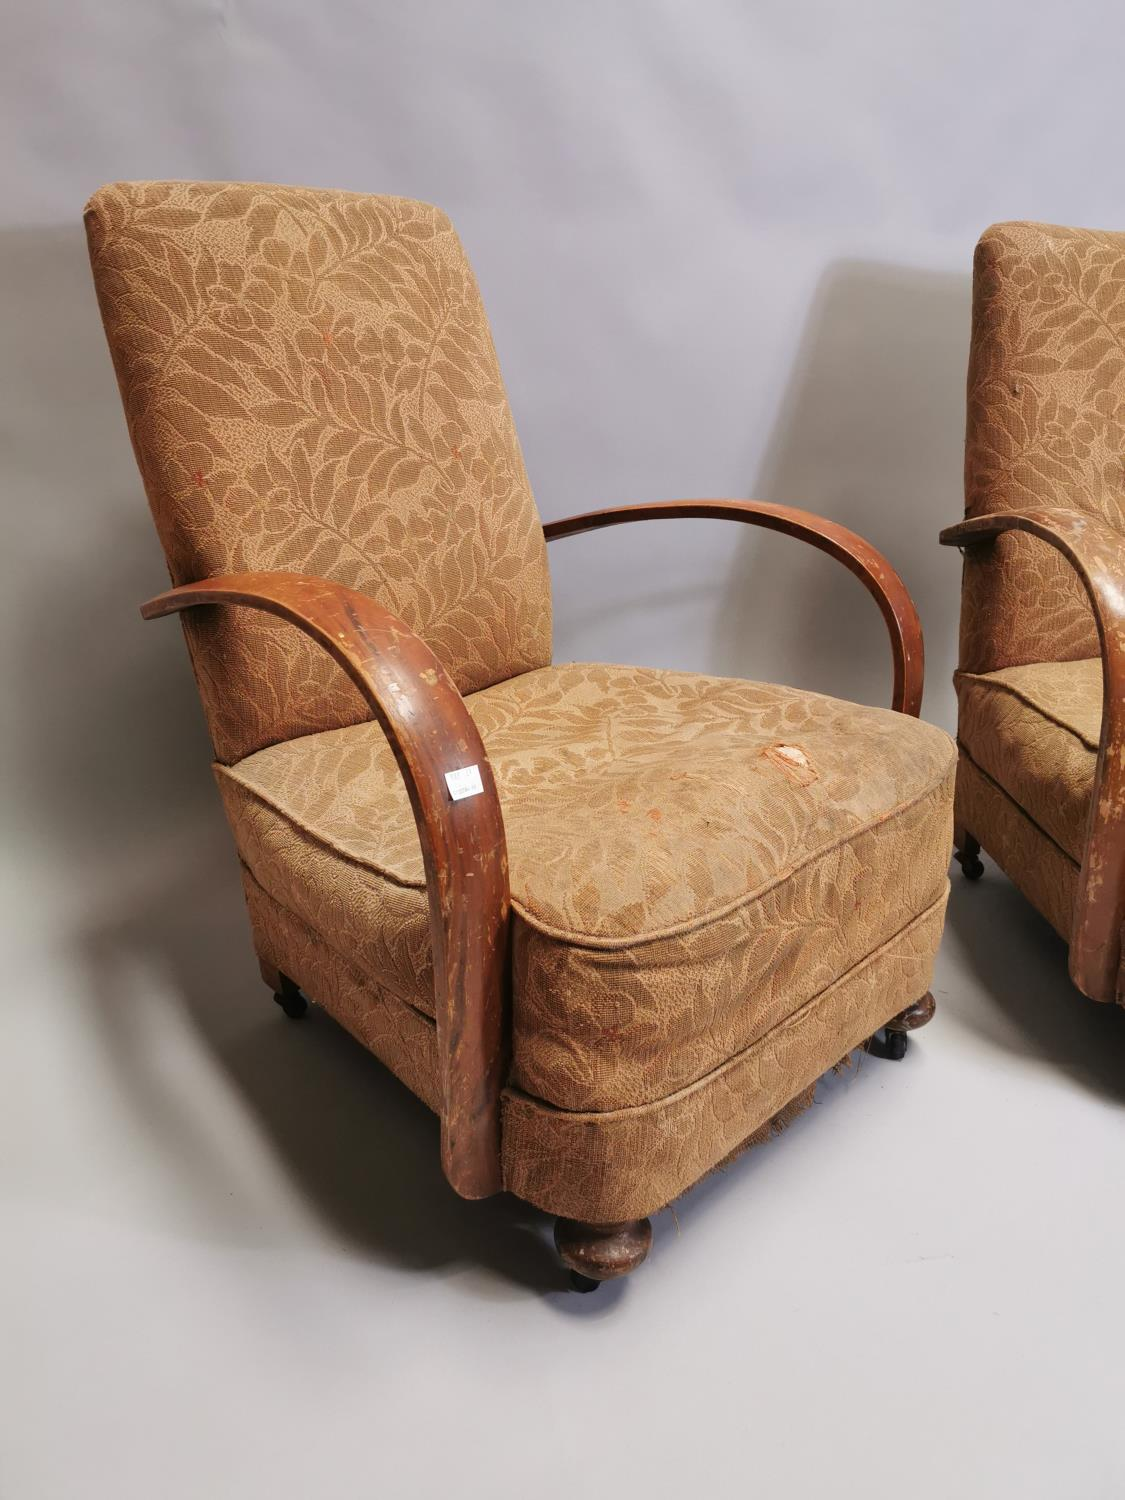 Pair of 1940's upholstered open armchairs - Image 4 of 5